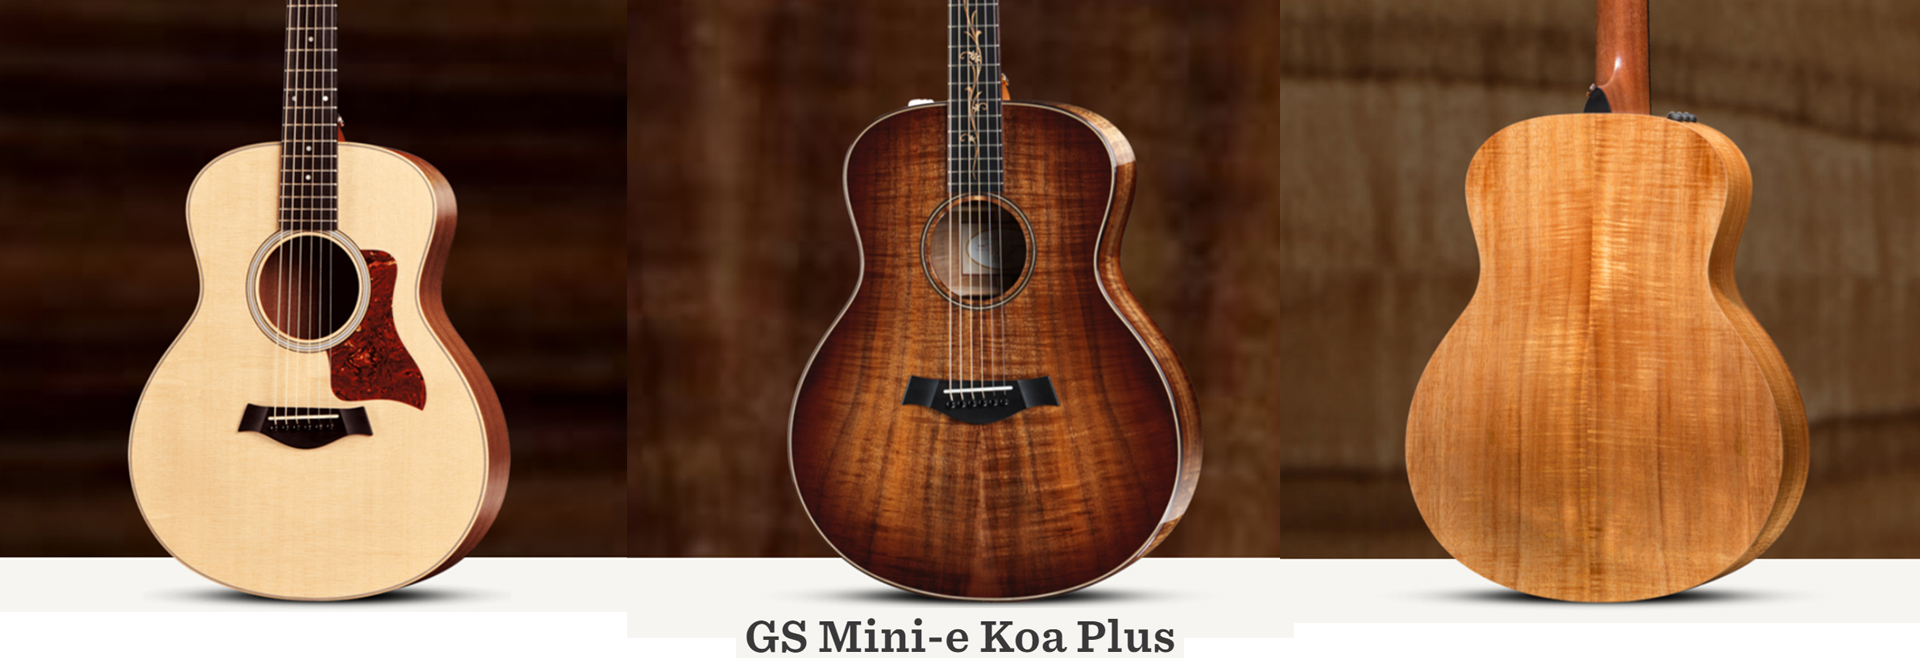 GS Mini-e Koa Plus